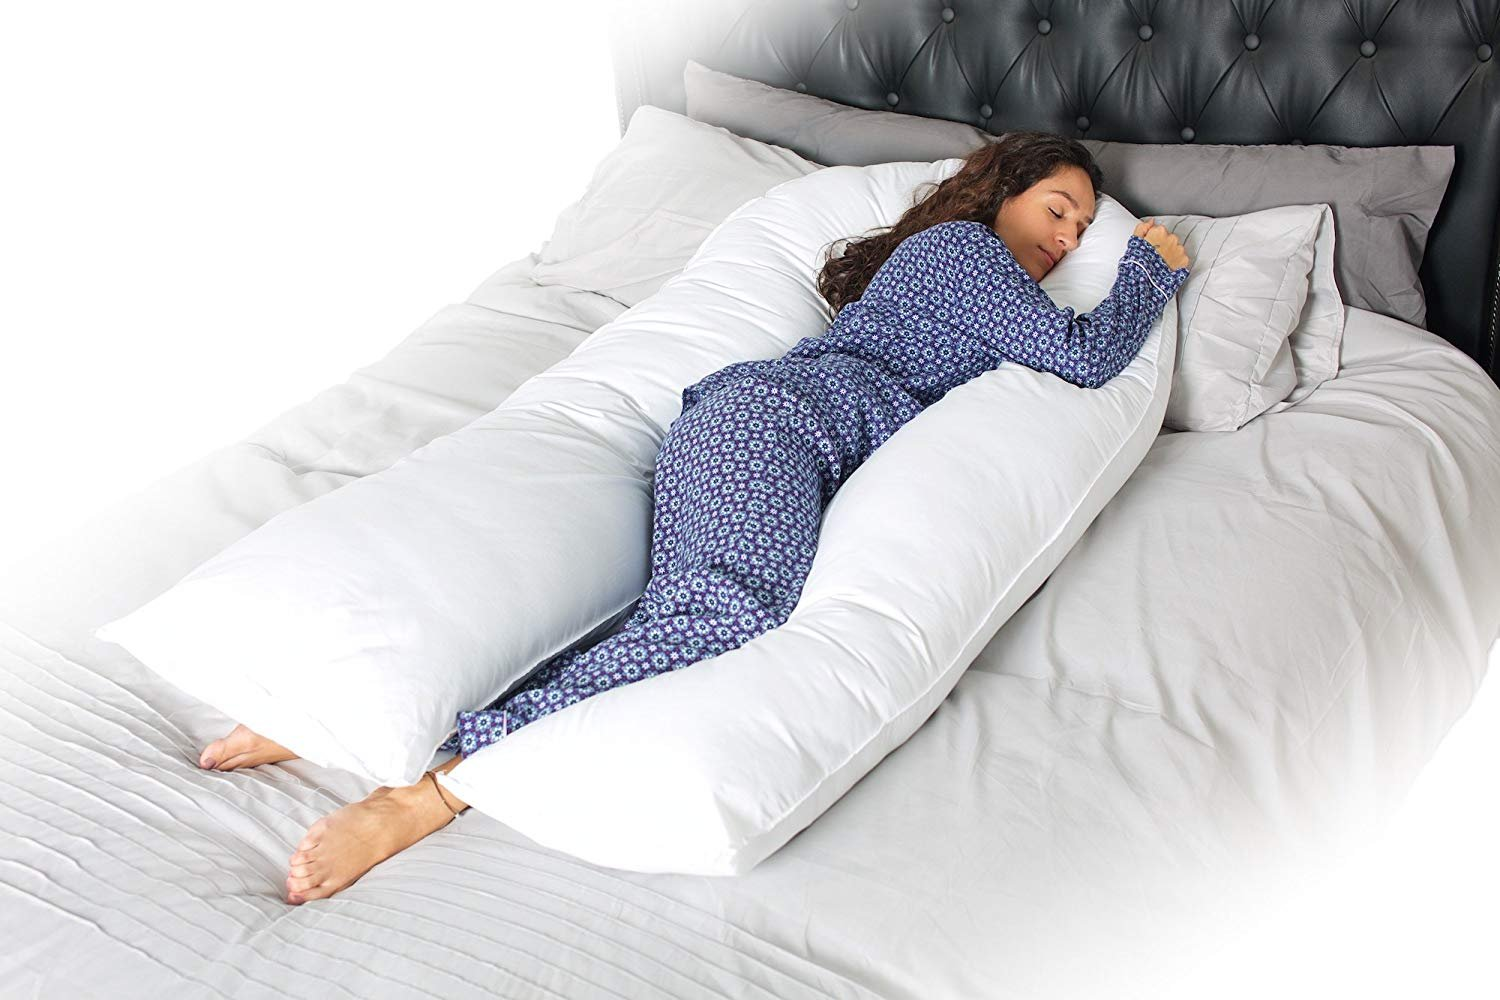 Full Body U Shaped Pregnancy Pillow & Maternity Pillow with Replaceable and Washable Cover (White) Civigrape